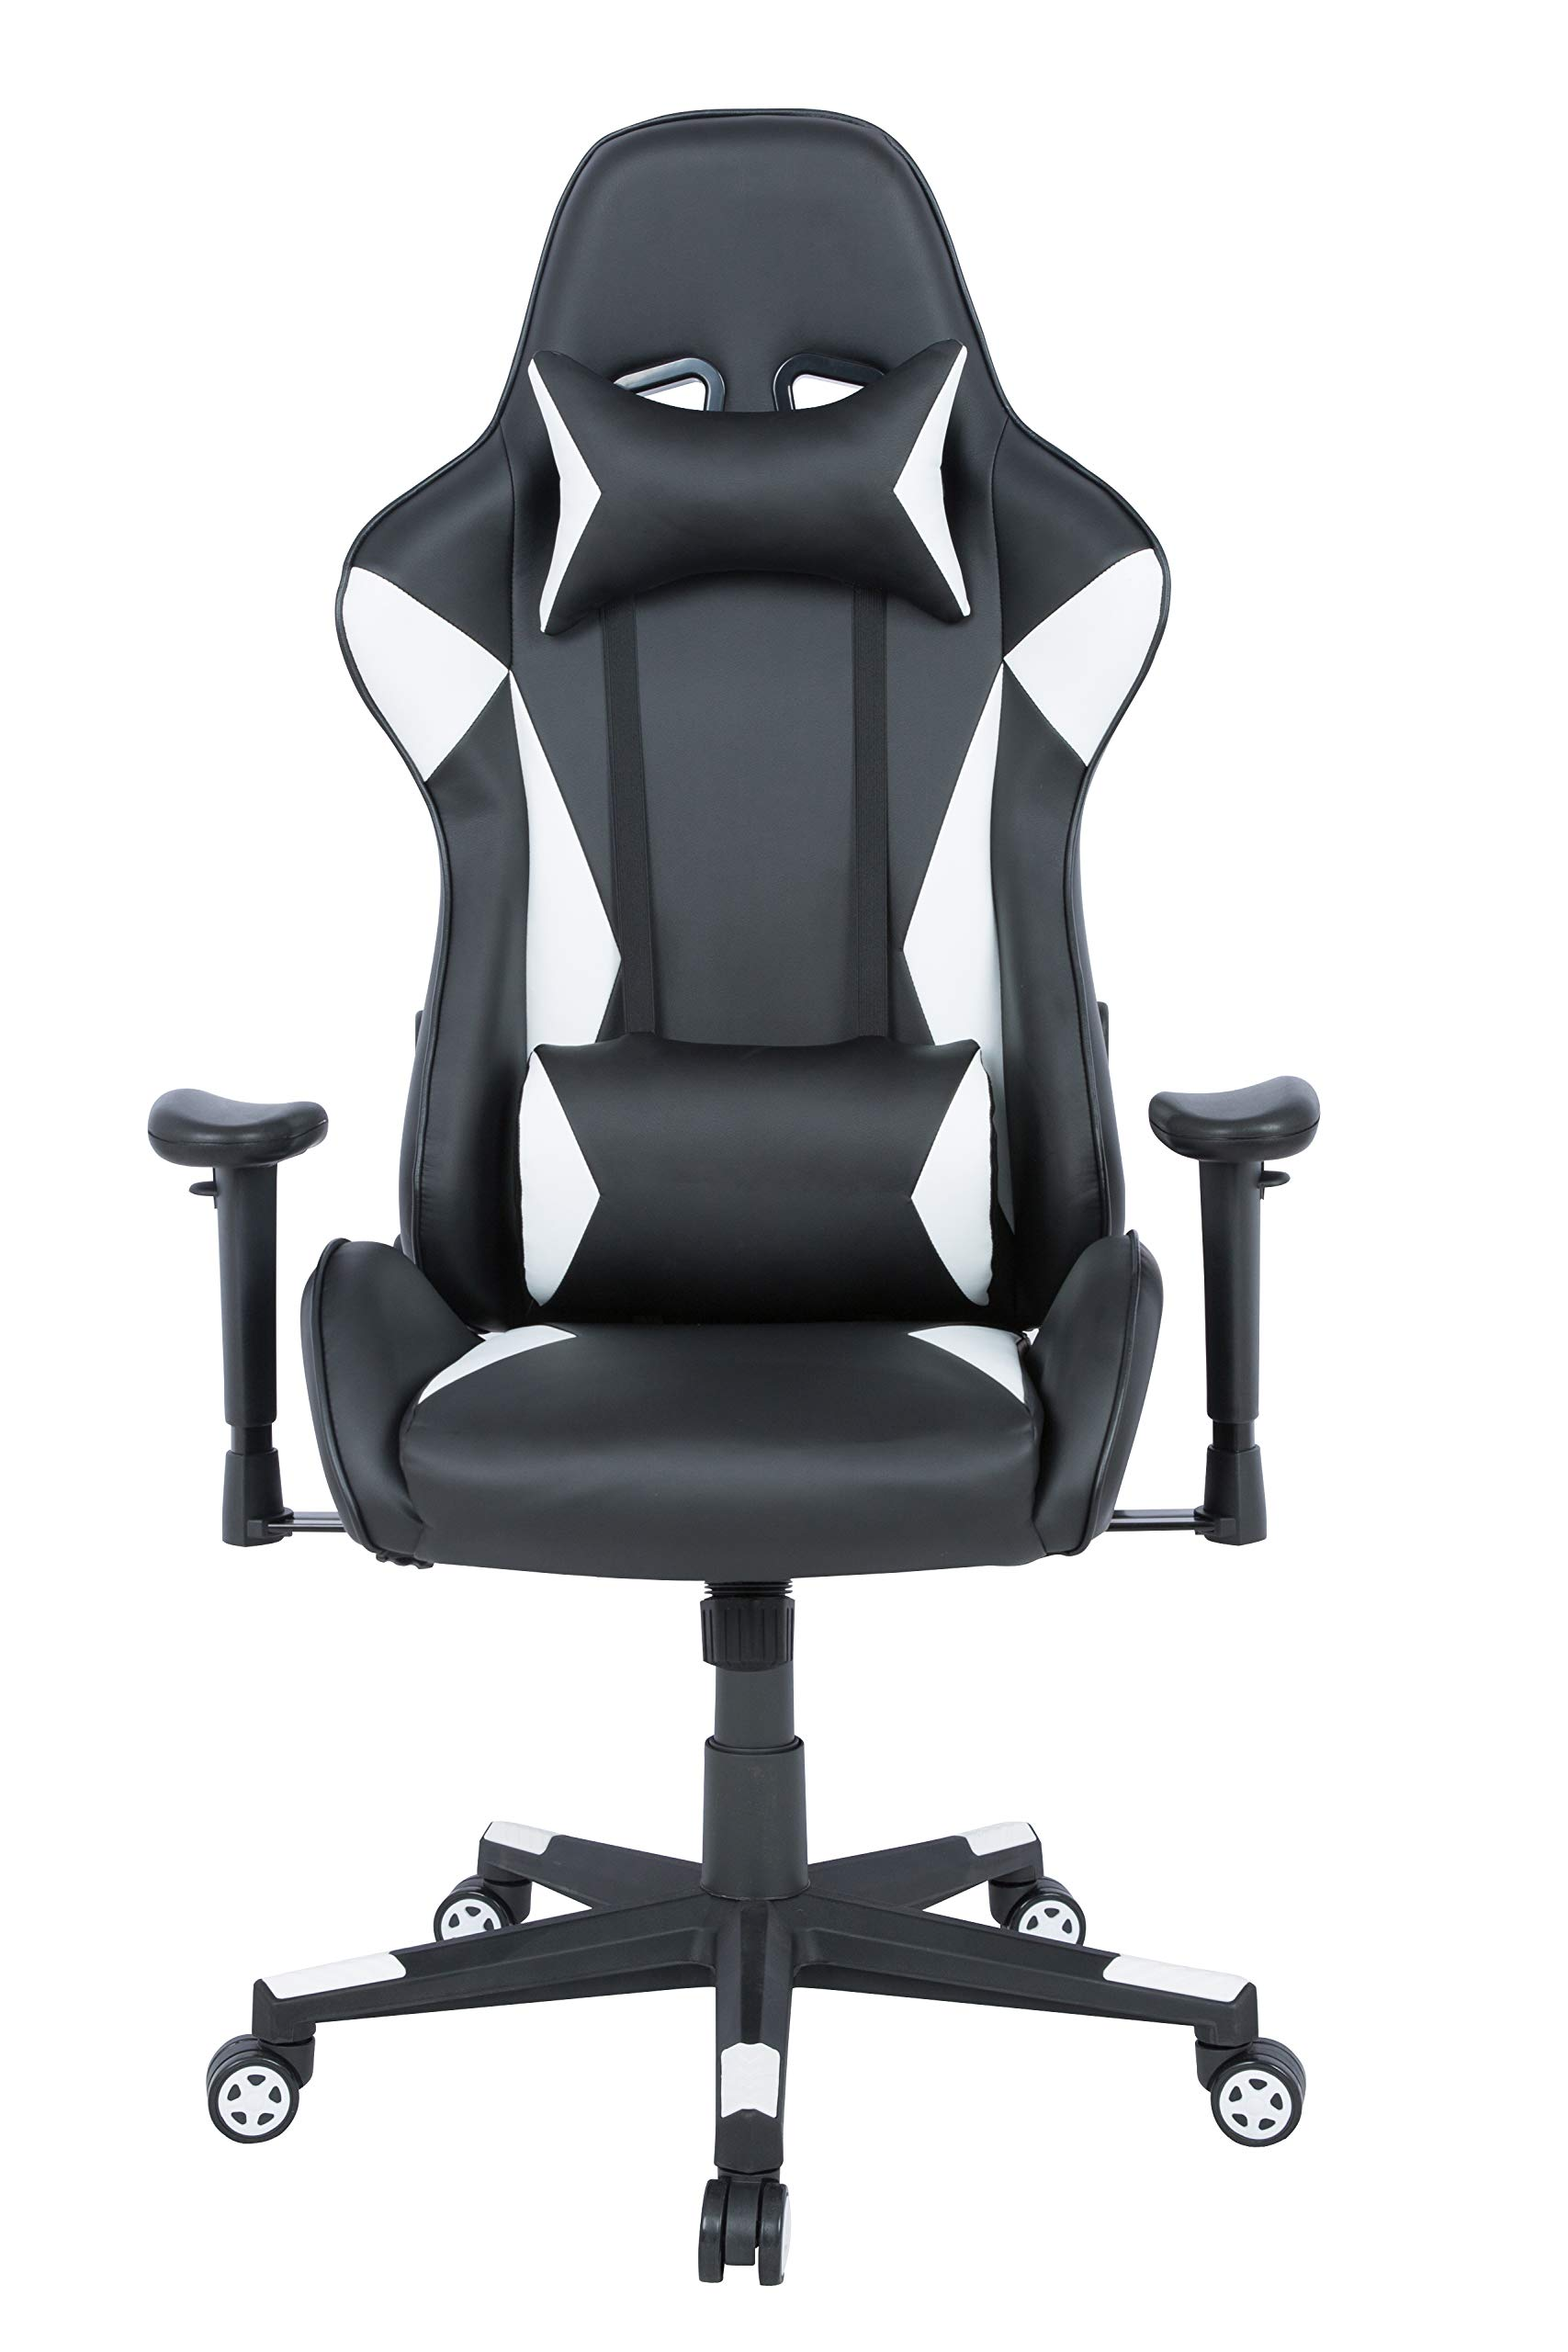 AmazonBasics Gaming Office Chair - Racing Style Seat with Headrest and Firm Lumbar Support - White